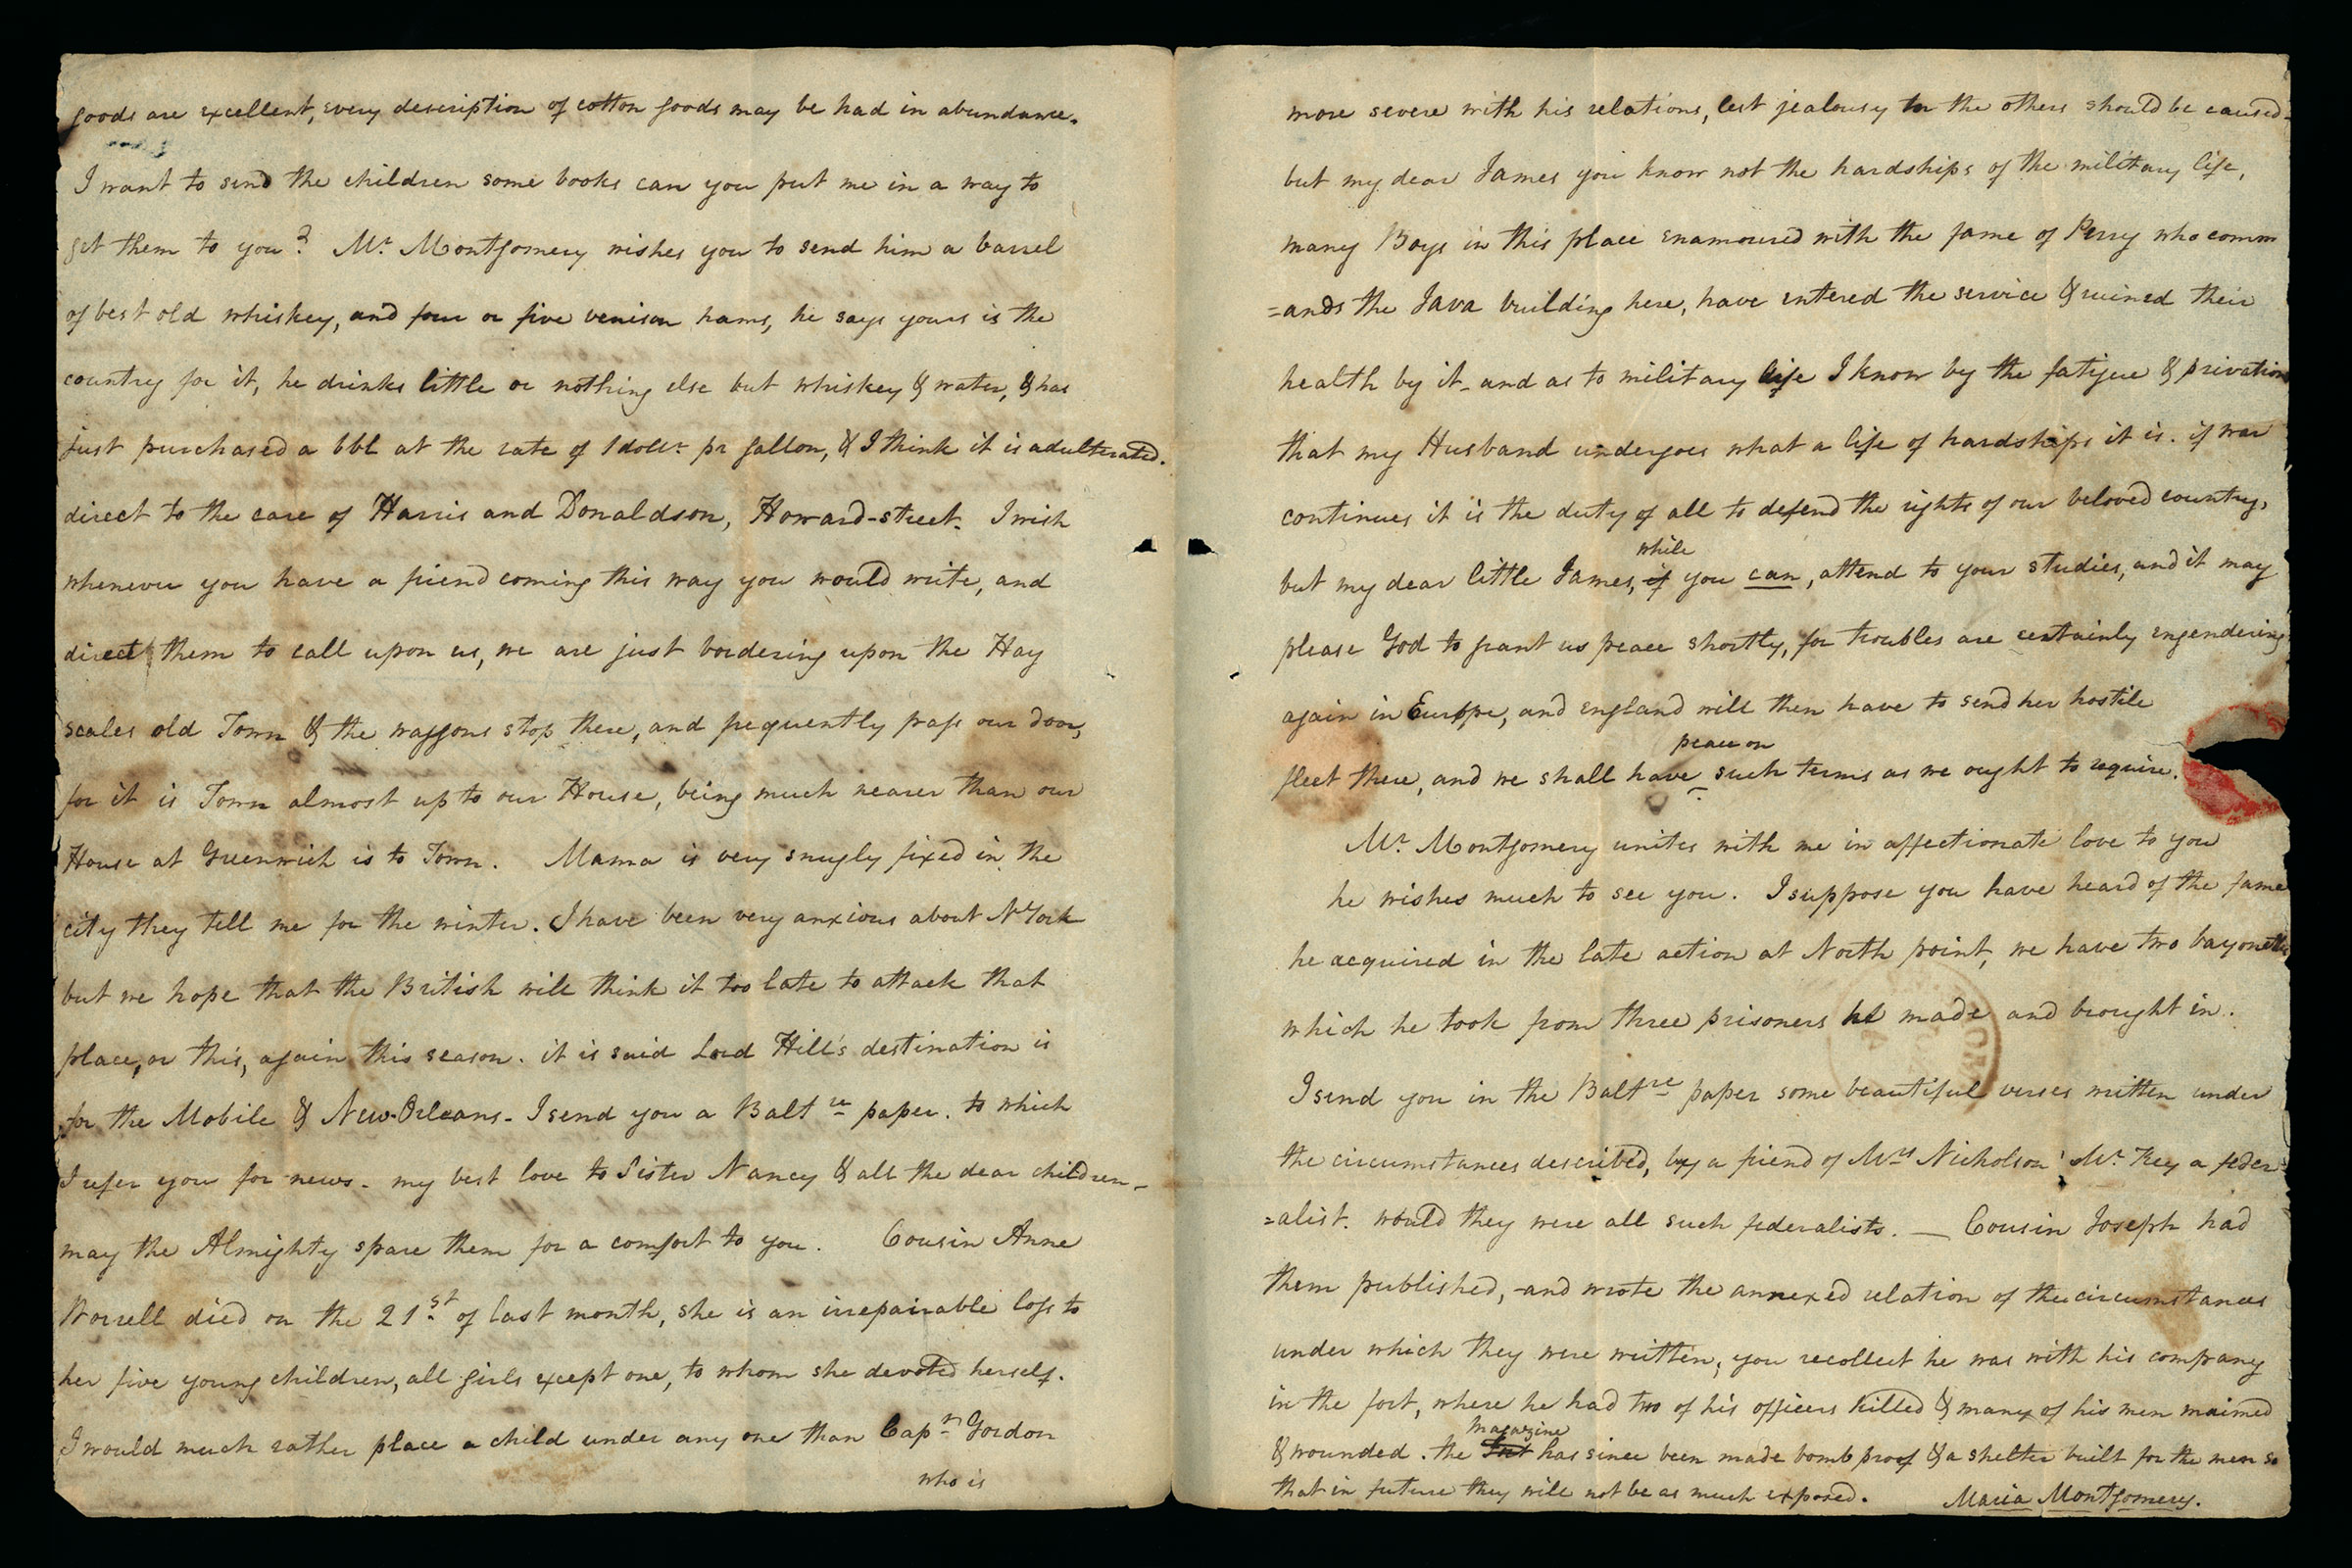 Francis Scott Key's Poem Before It Became the Star Spangled